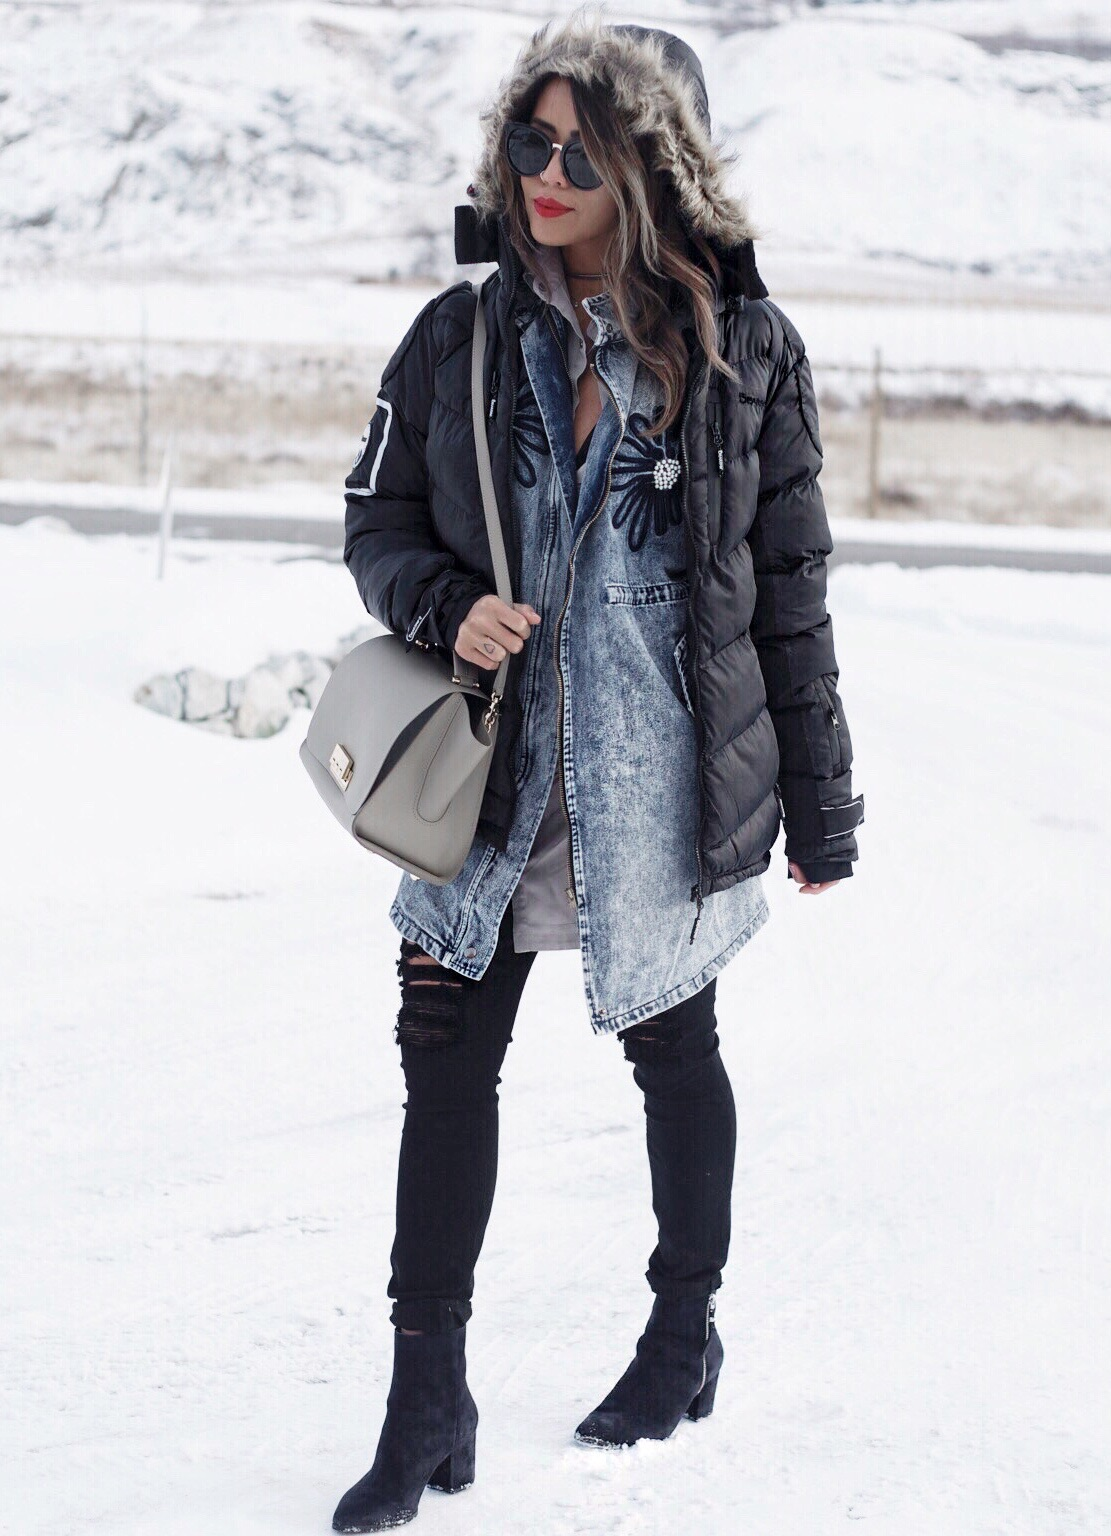 How to Look Chic in a Puffy Jacket